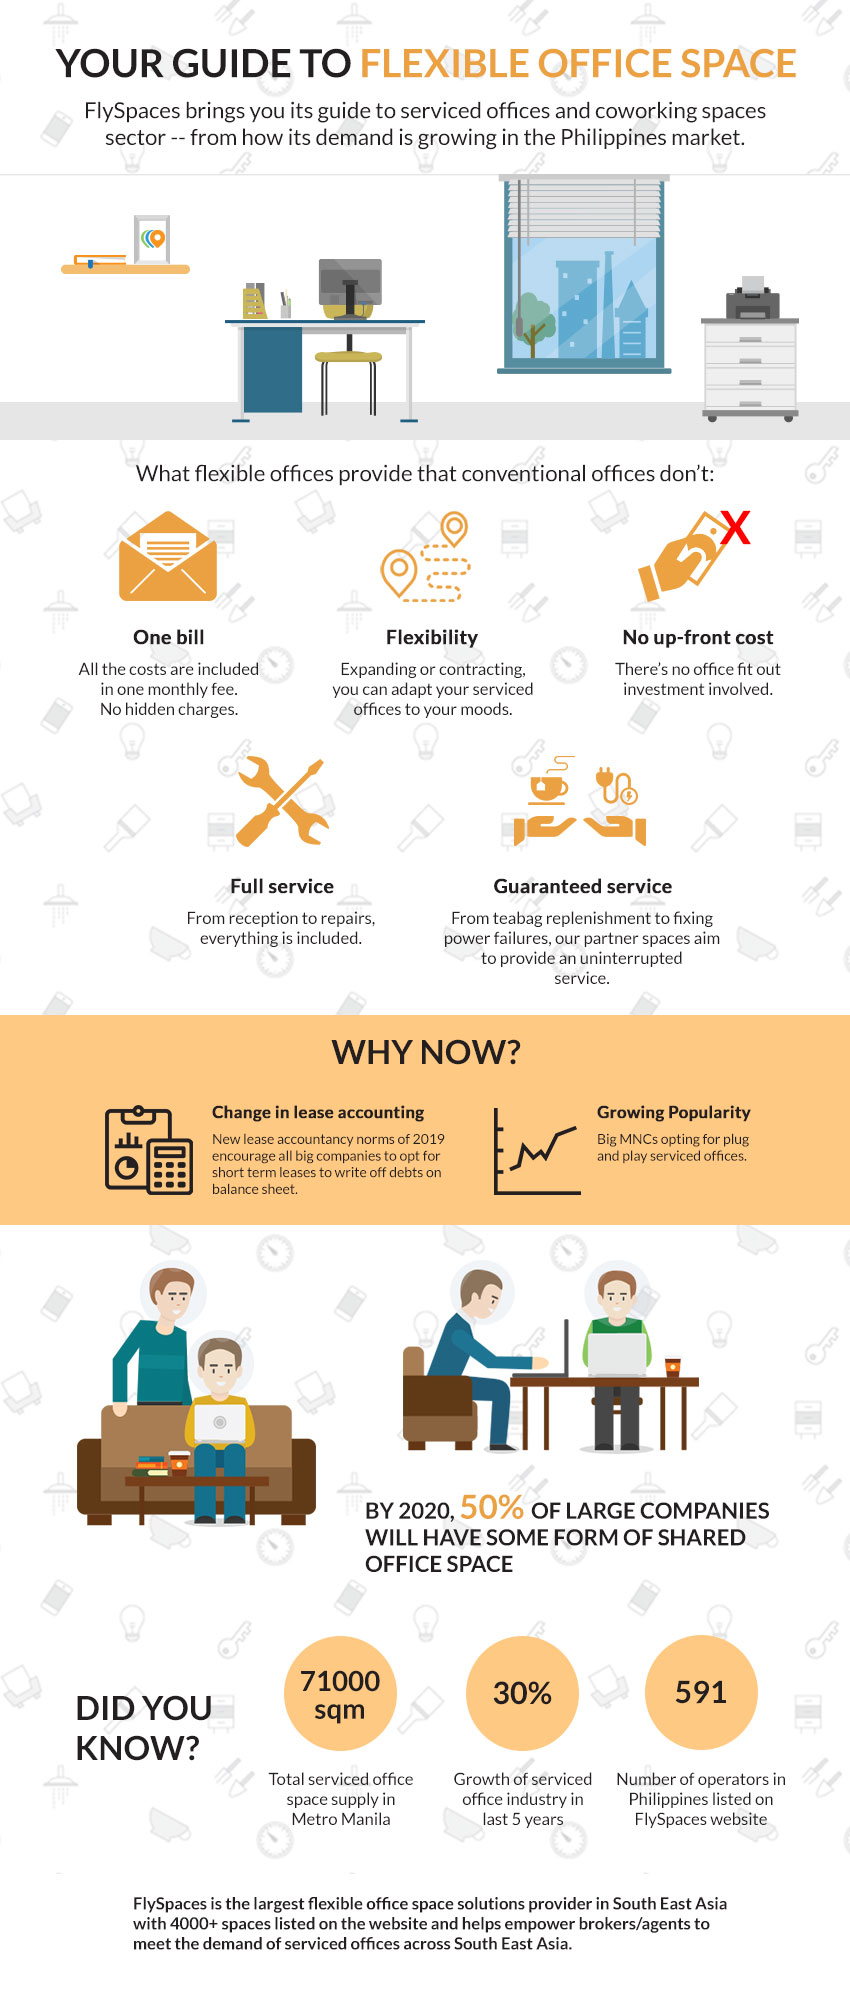 FlySpaces Brokers Infographic Guide to Flexible Office Space